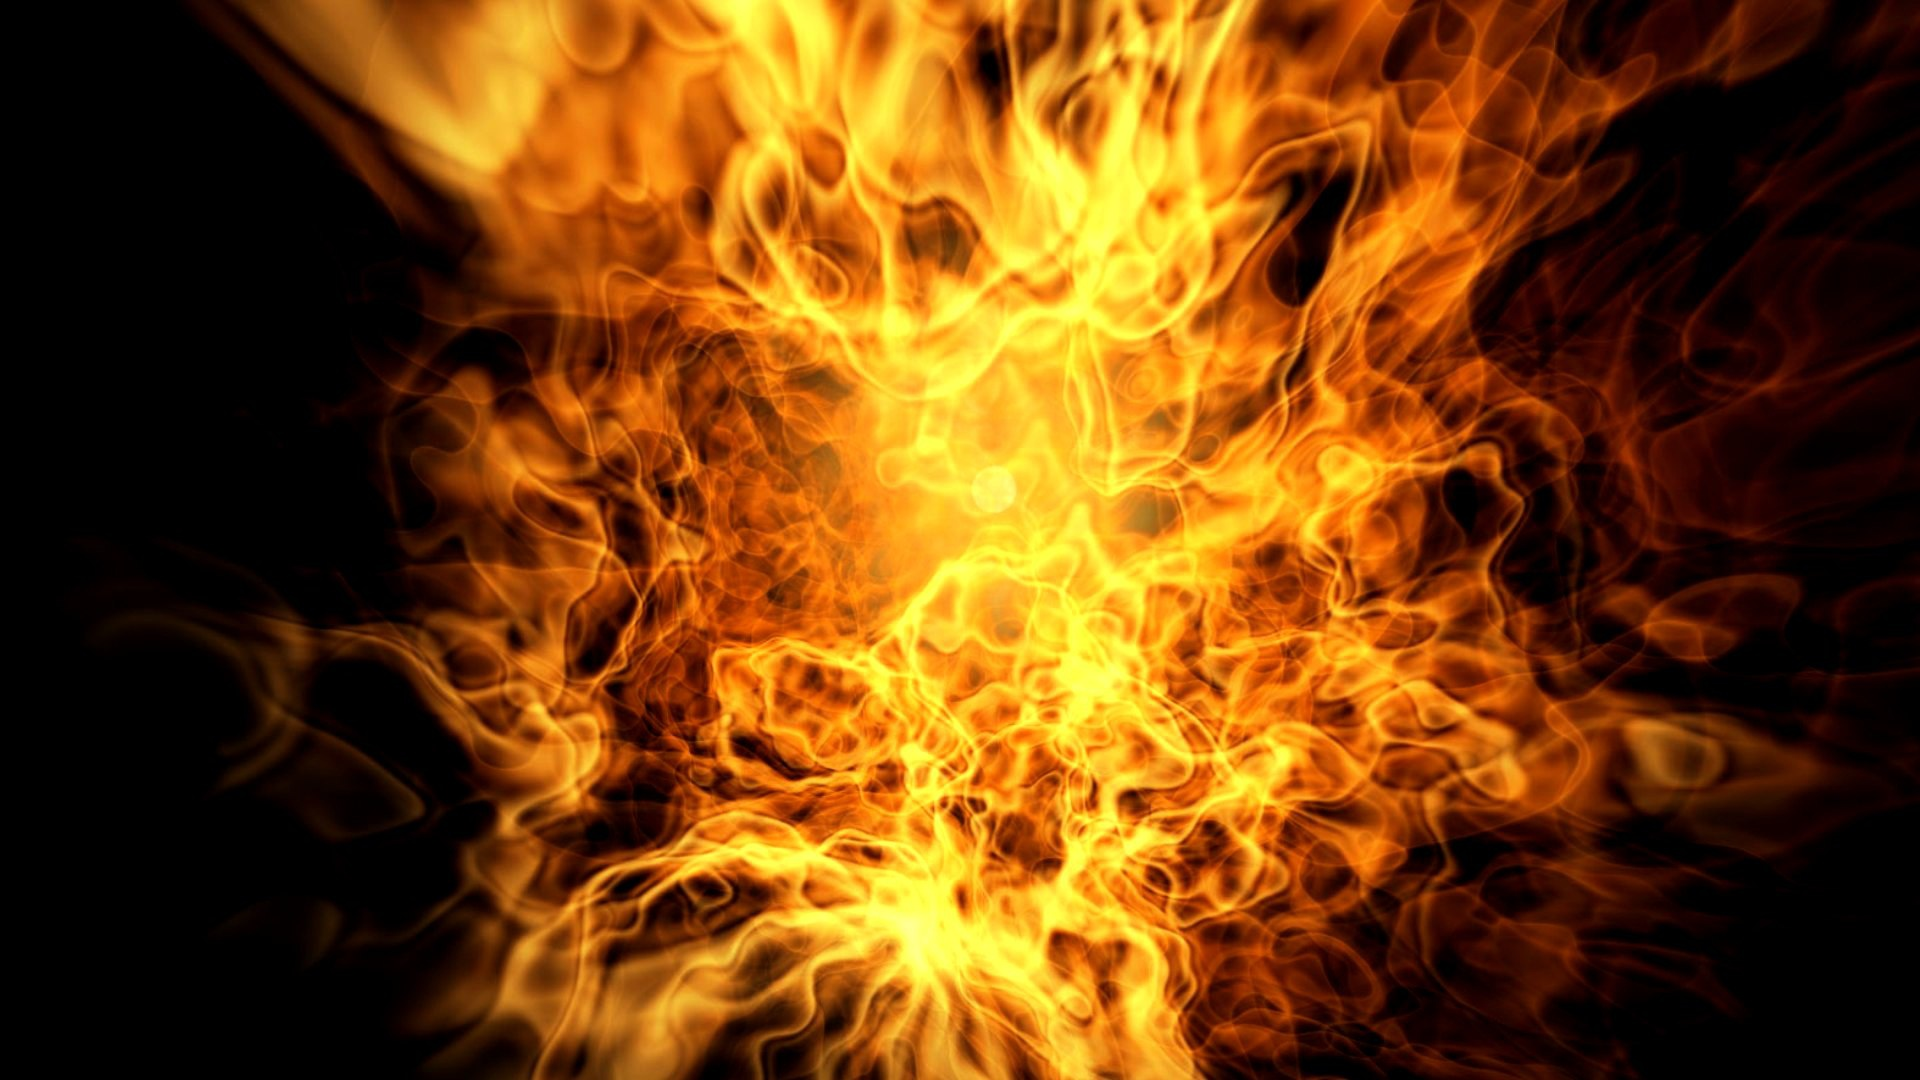 awesome fire backgrounds - wallpapersafari